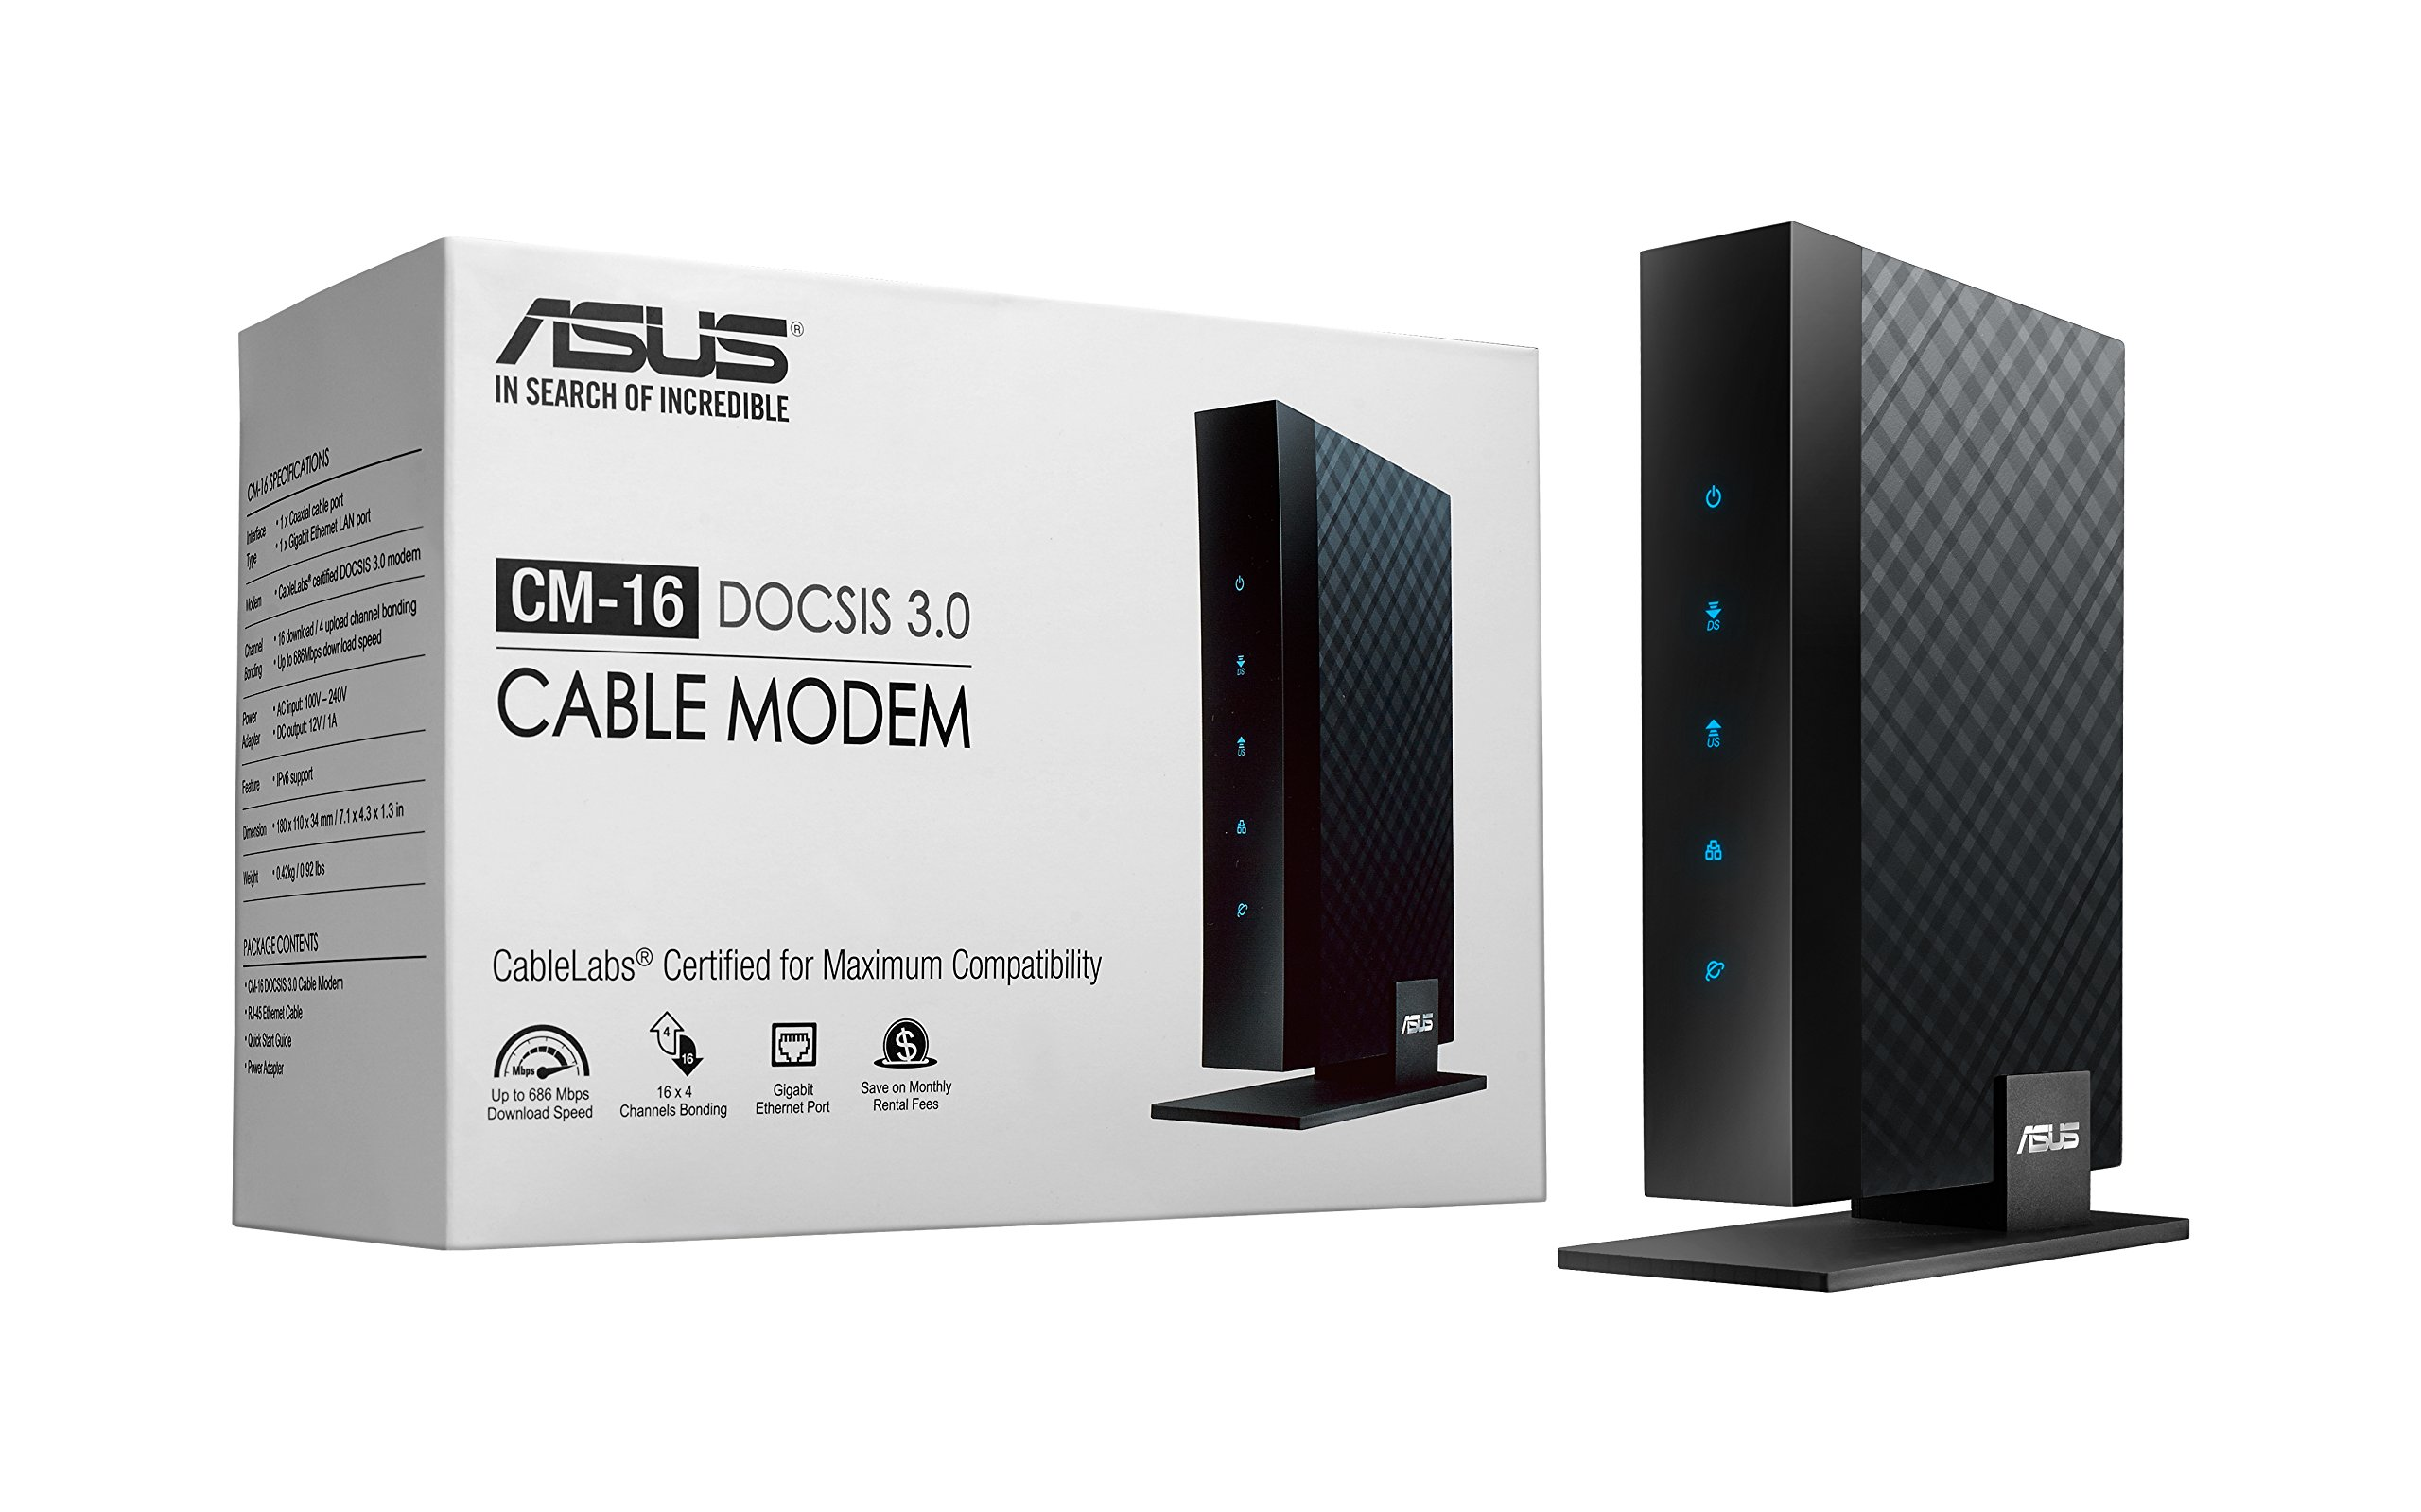 ASUS DOCSIS 3.0 High Speed 16 x 4 Cable Modem, Max. Download Speed 686 Mbps, Certified for Xfinity from Comcast, Spectrum and Cox, Separate wireless router required for Wi-Fi connectivity (CM-16)